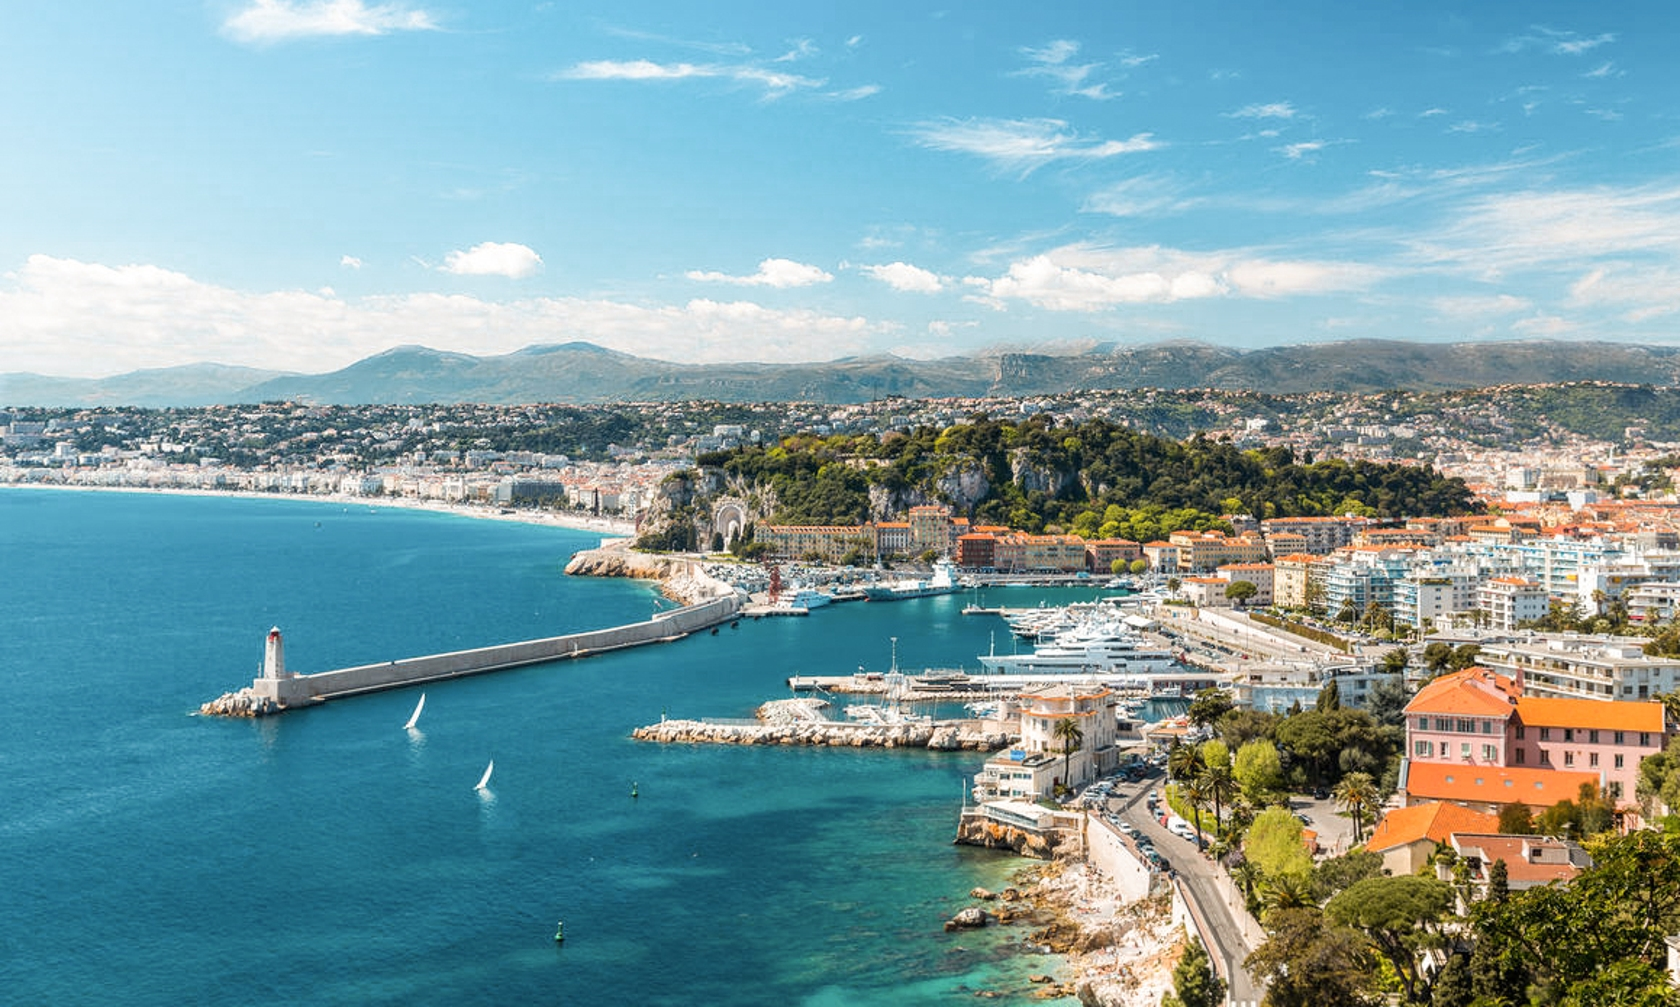 Villa and house rentals in Nice